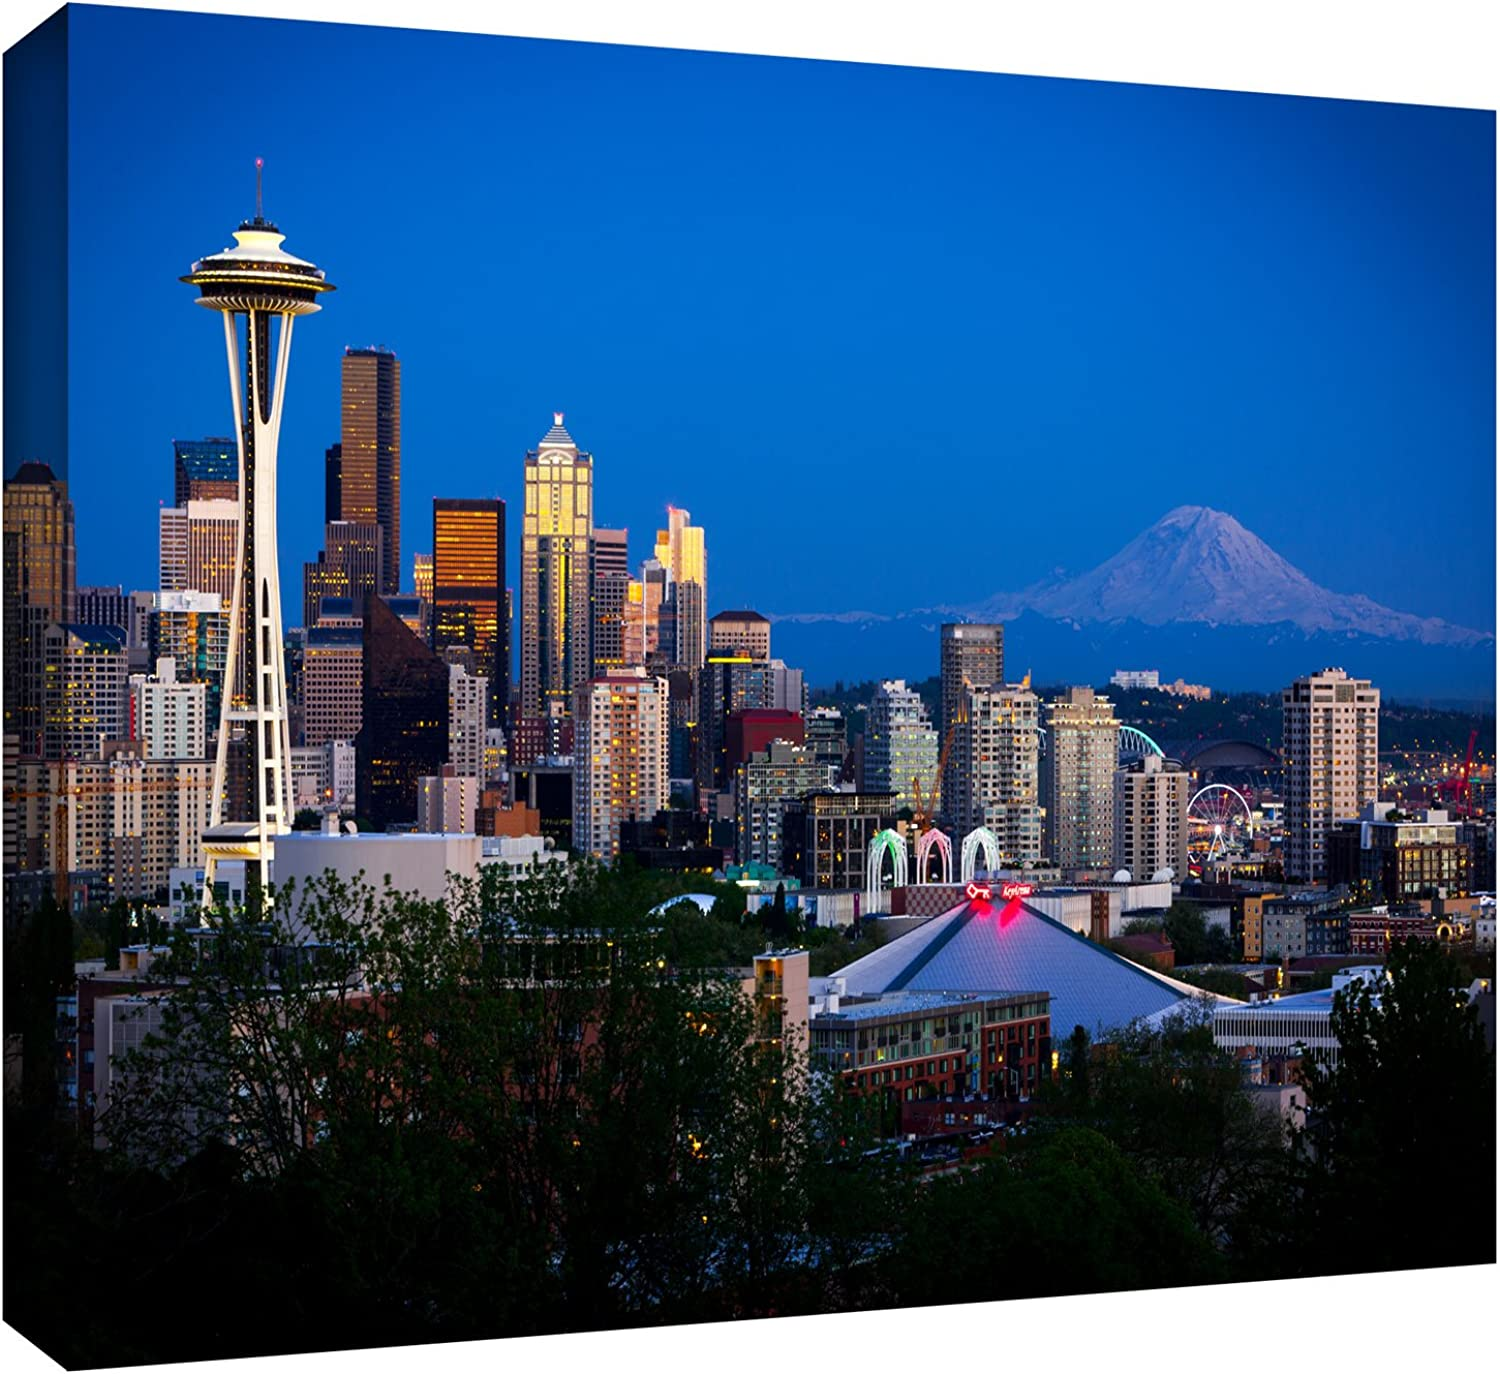 ArtWall Cody York 'Seattle and Mt. Rainier' Gallery-Wrapped Canvas Artwork, 24 by 36-Inch